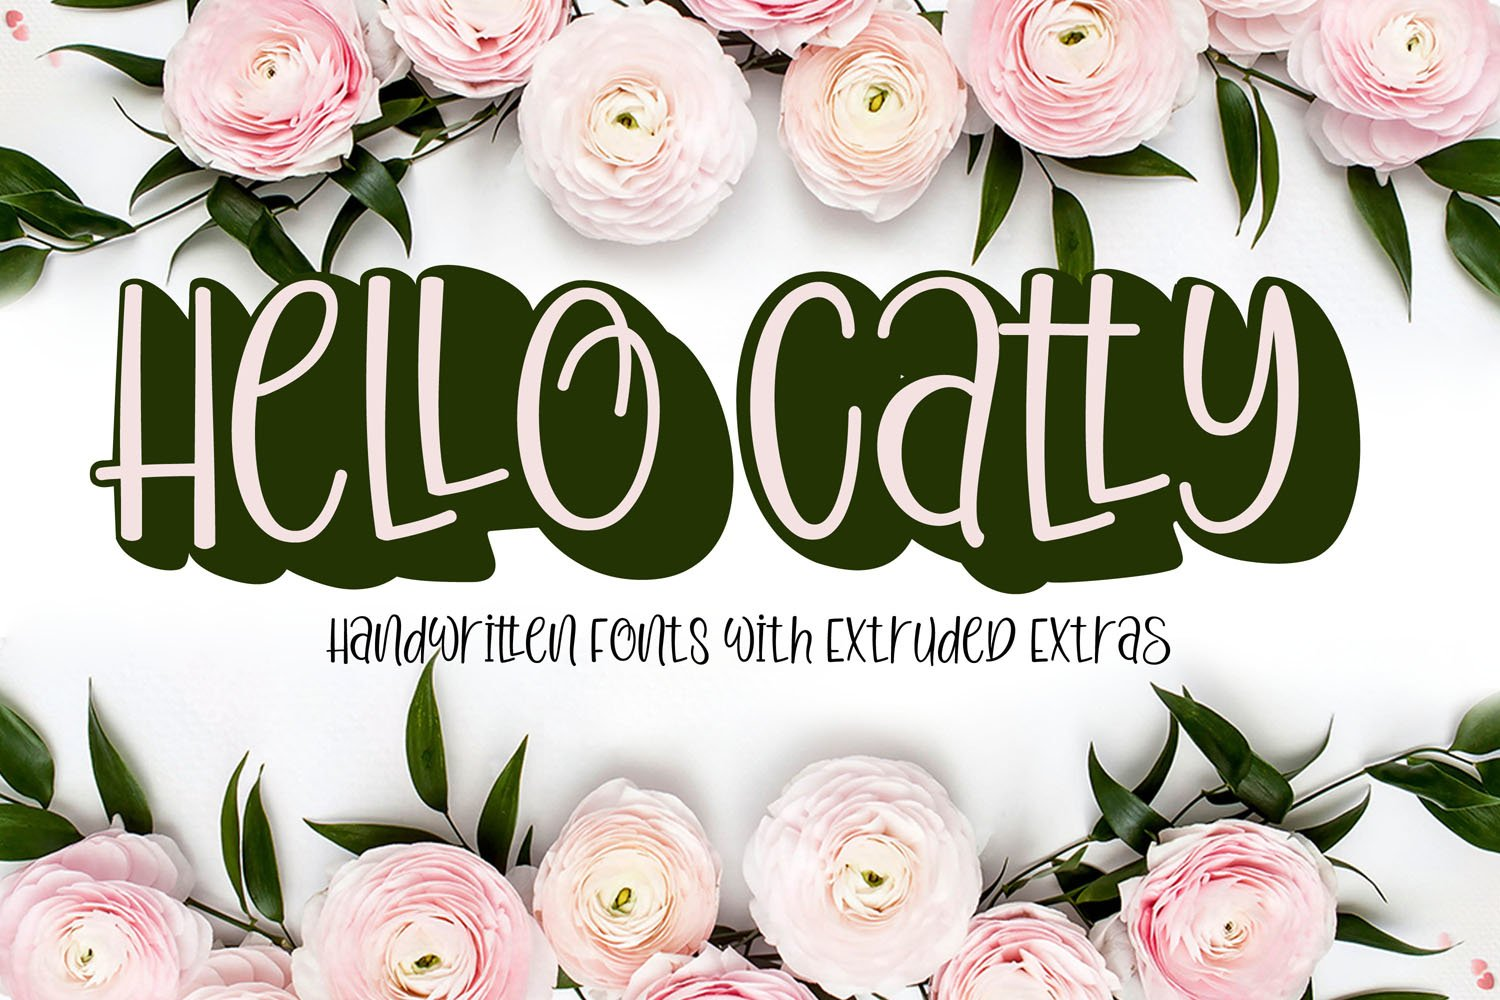 Hello Catty With extruded extras example image 1